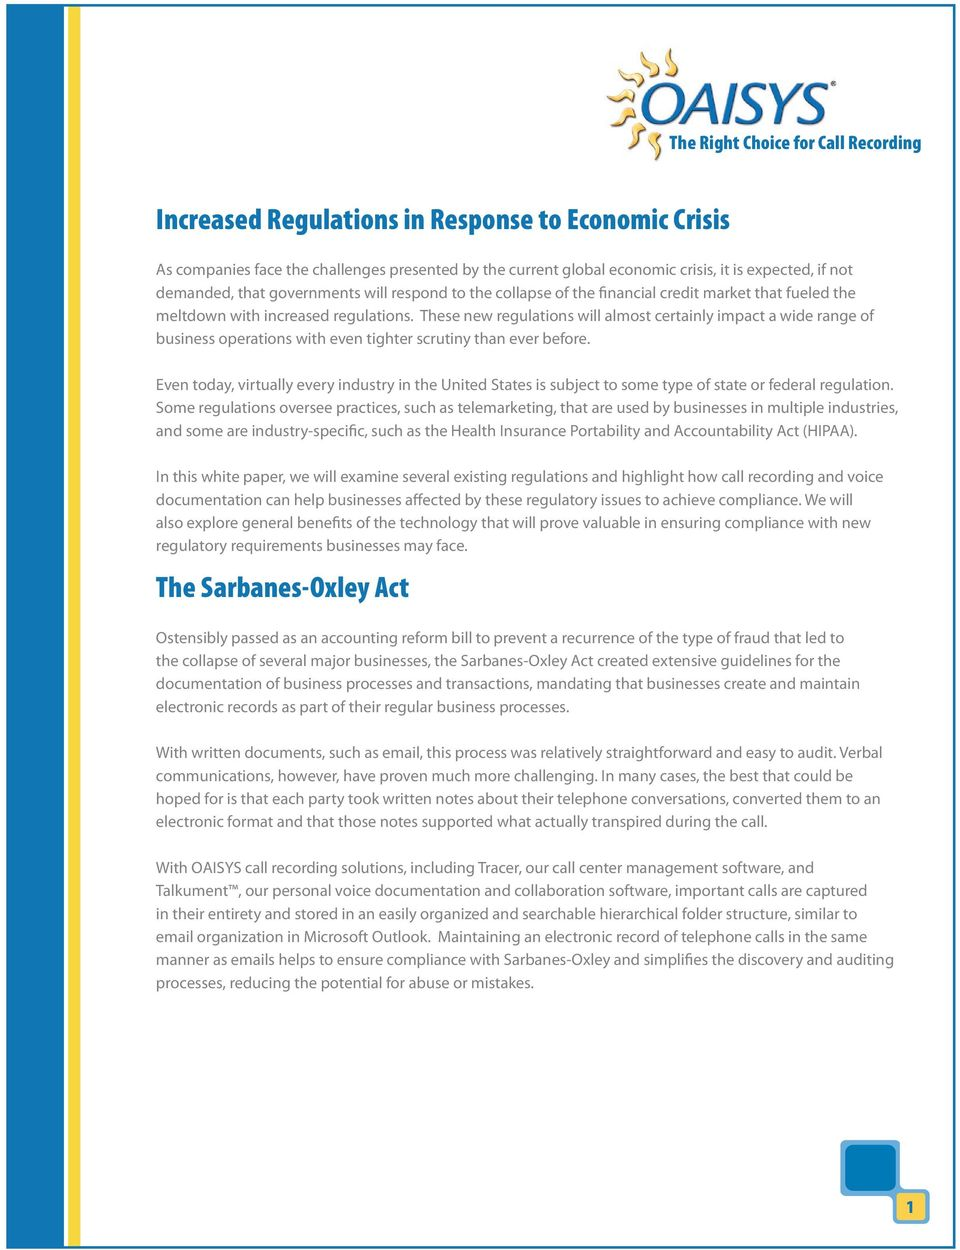 These new regulations will almost certainly impact a wide range of business operations with even tighter scrutiny than ever before.